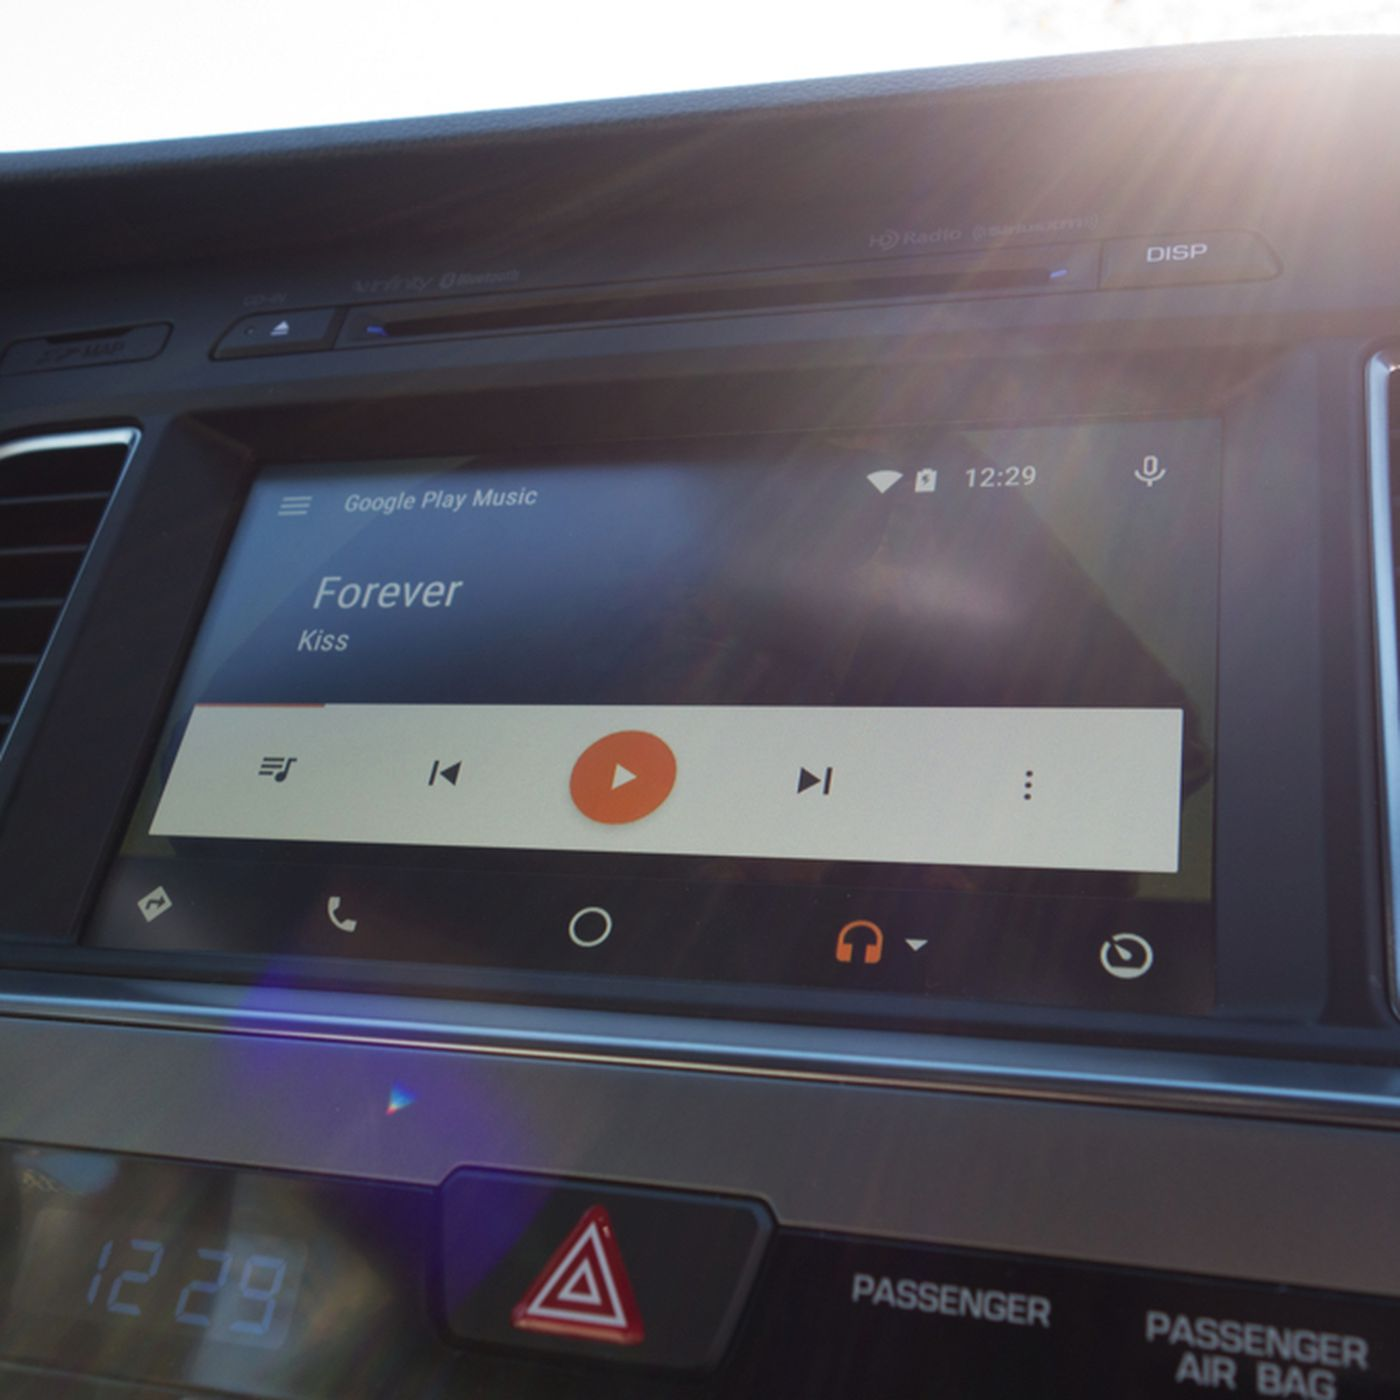 Now that Android Auto is here, get ready to sell your car - The Verge